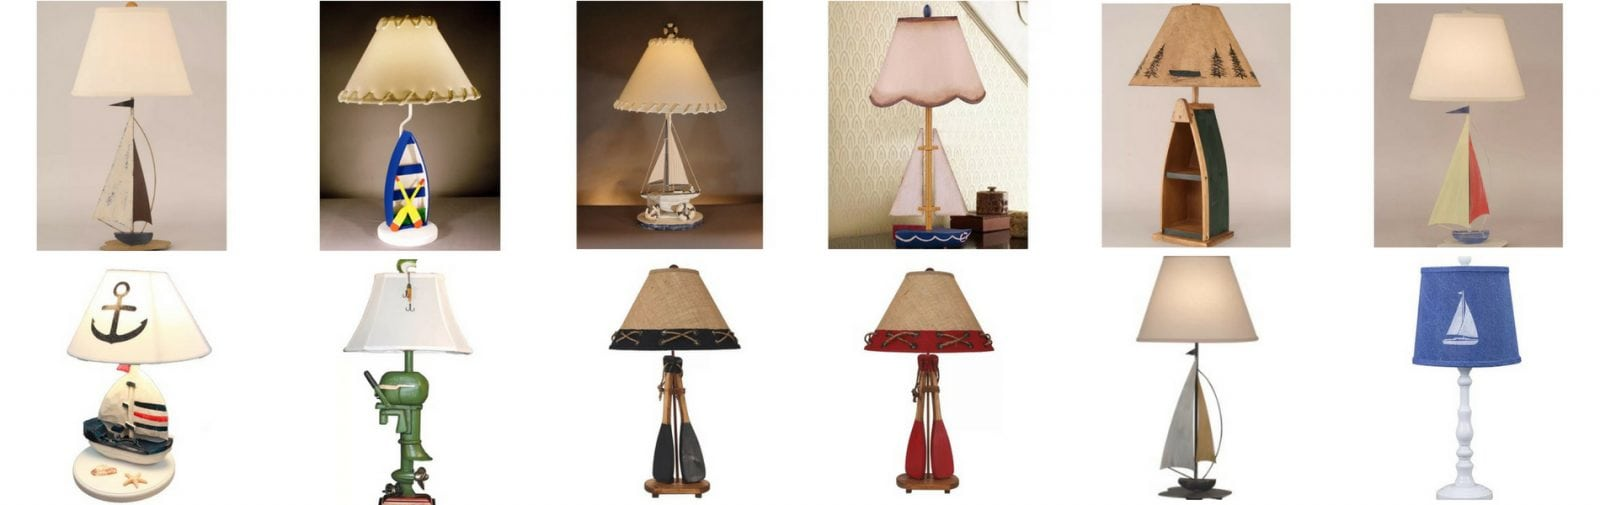 boat lamps and sailboat lamps